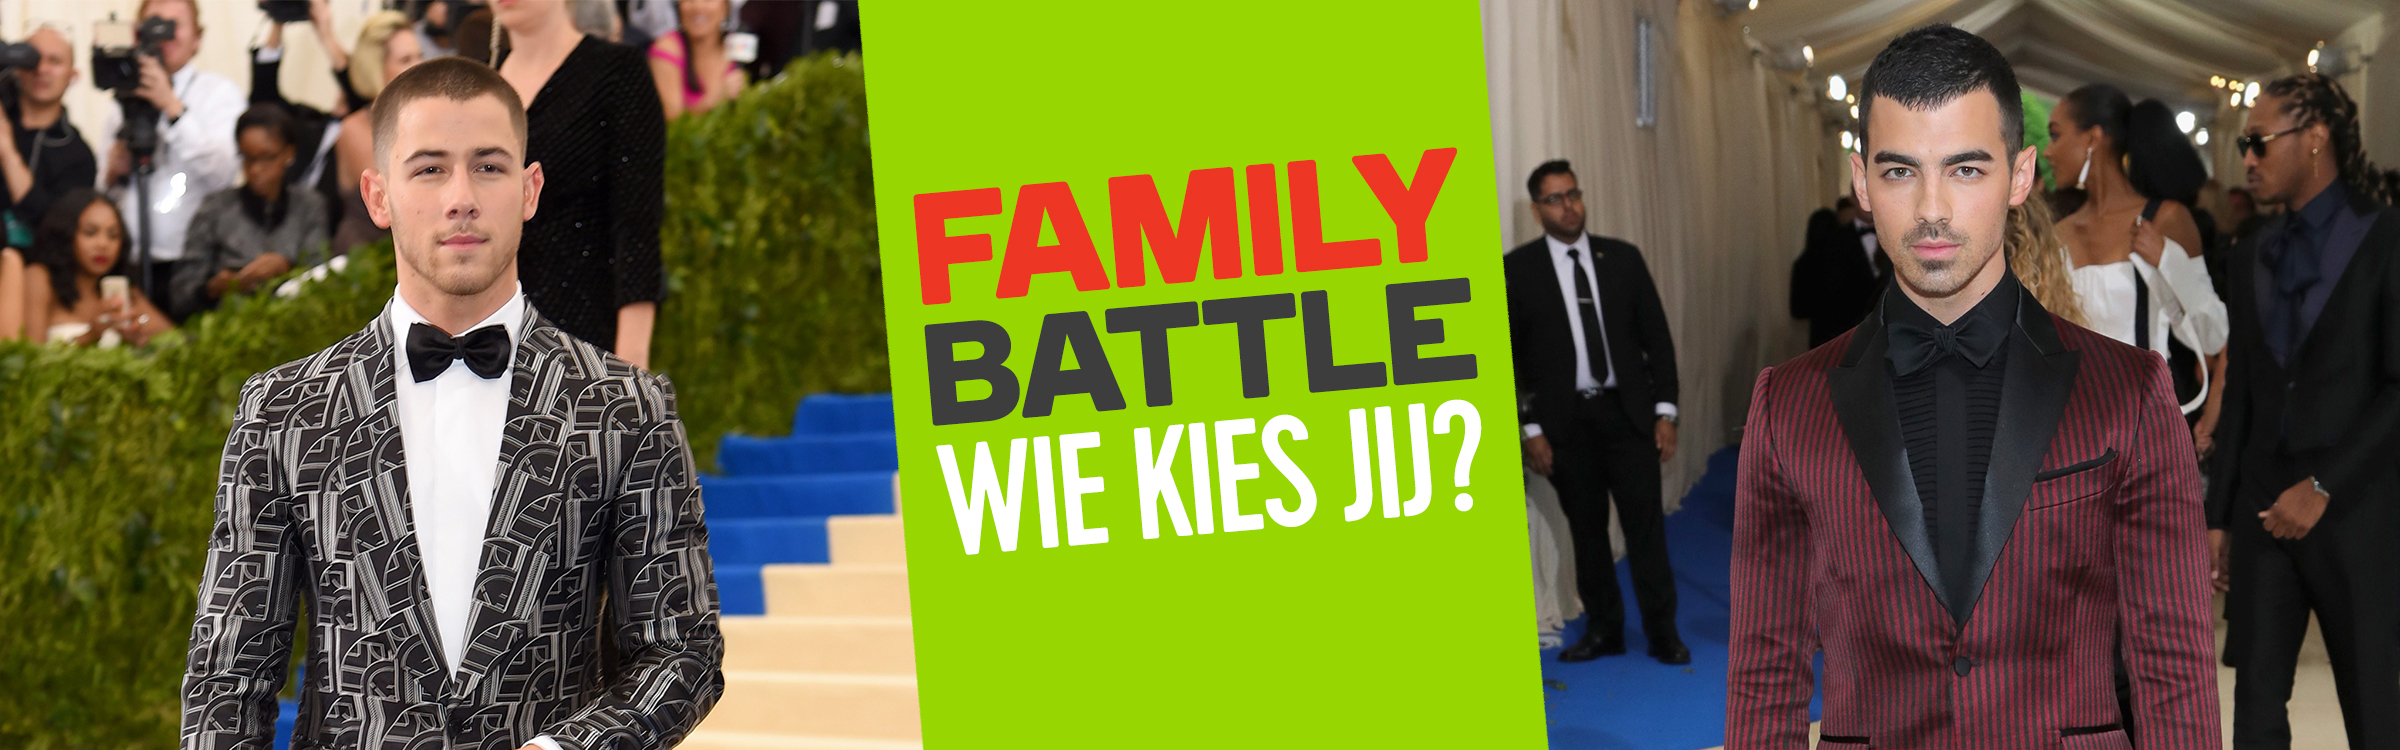 Qmusic actionheader familybattle